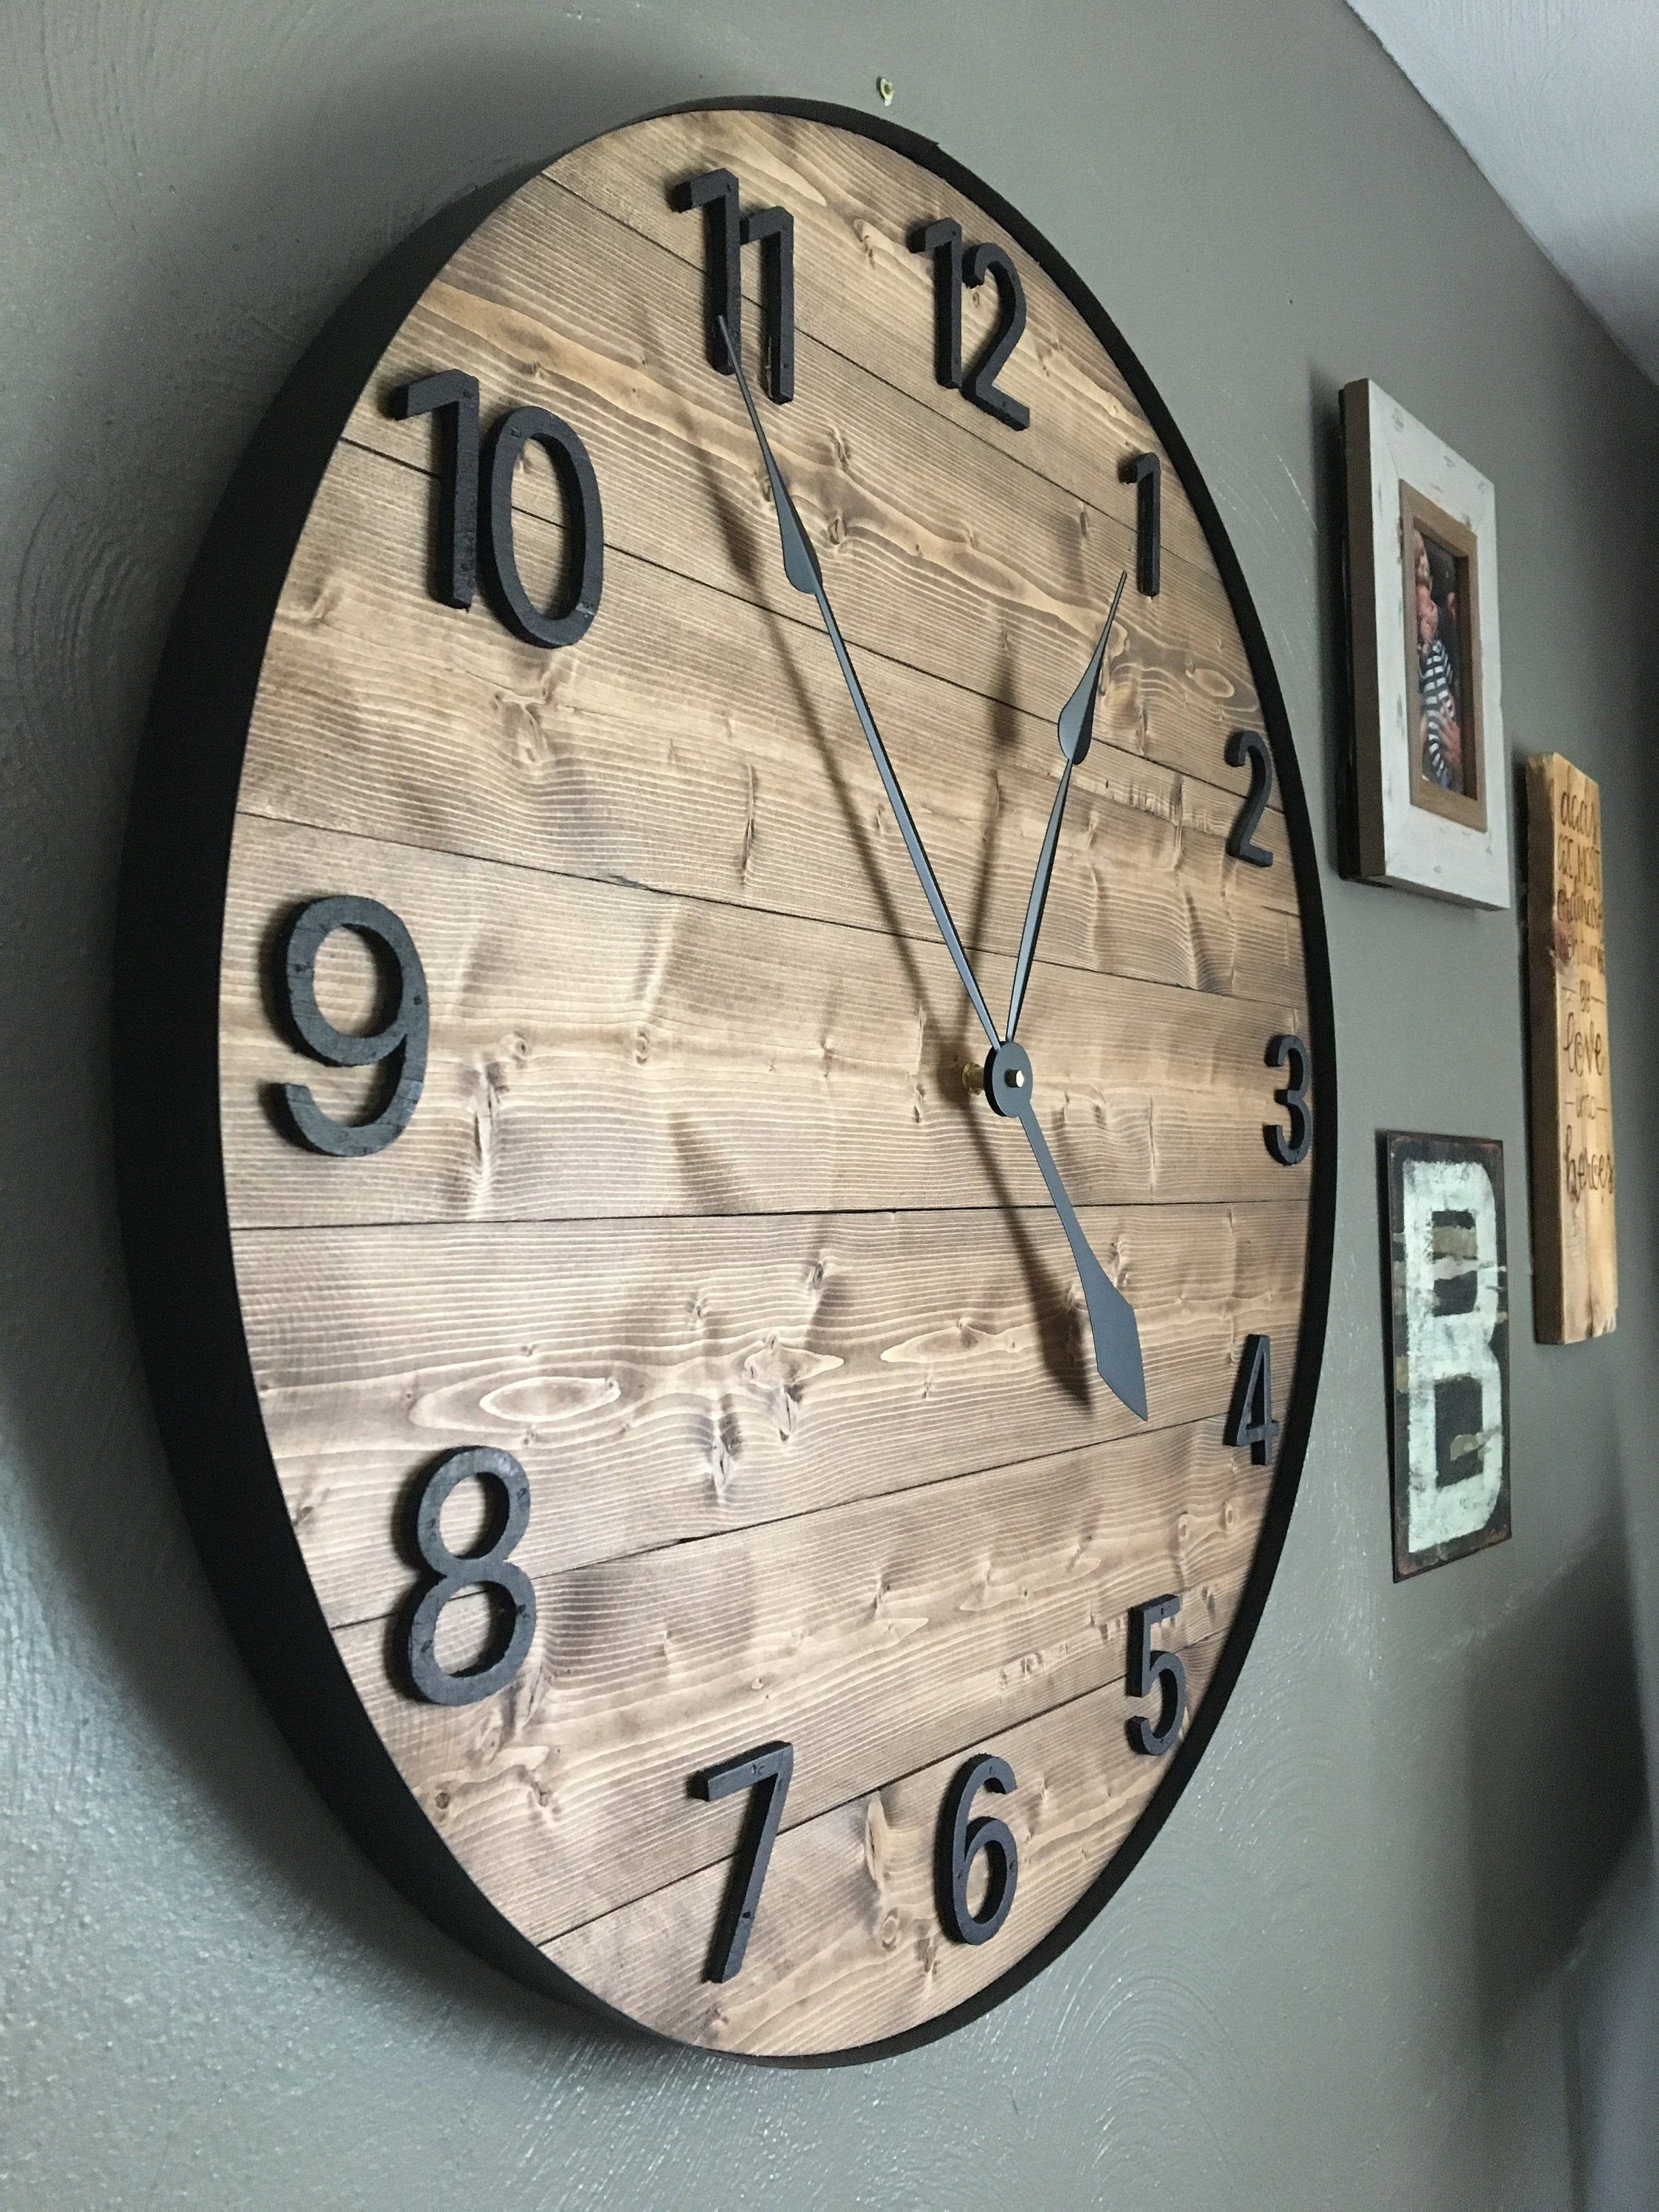 24 Numeric Wall Clock Large Wall Clock Farmhouse Wall Etsy Diy